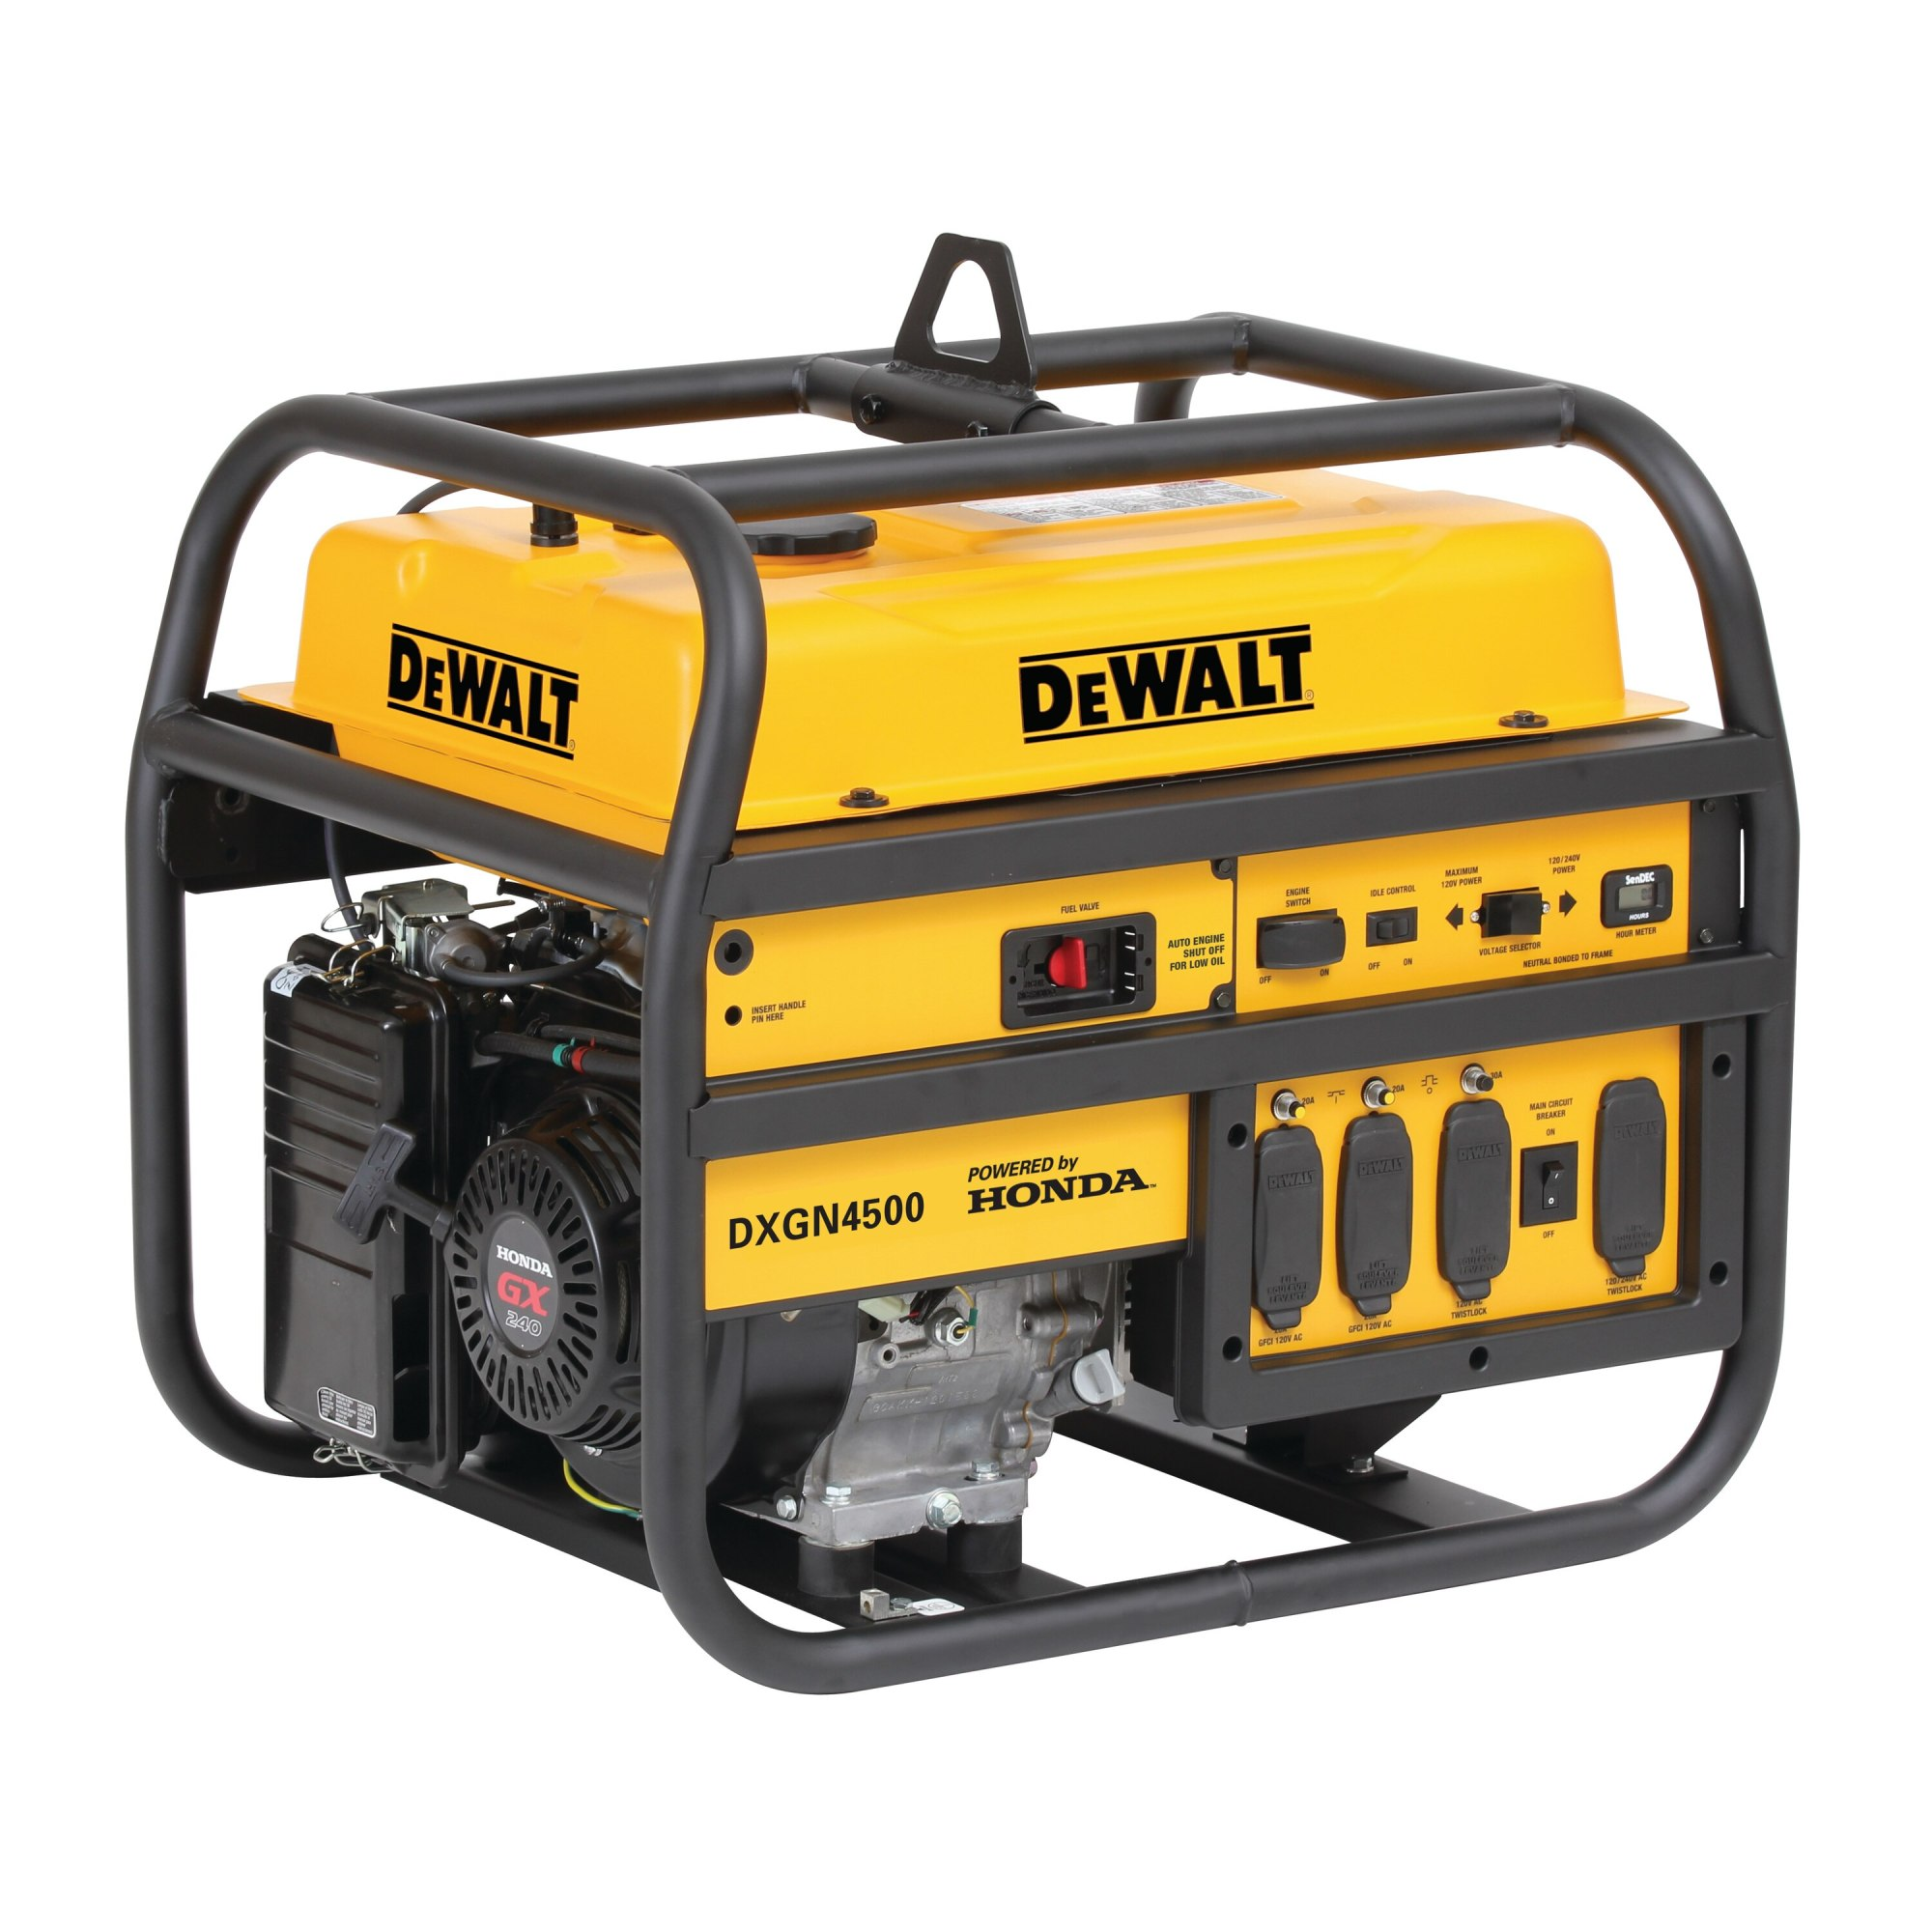 hight resolution of 4500 watt commercial generator dxgn4500 dewalt dewalt generator wiring diagram